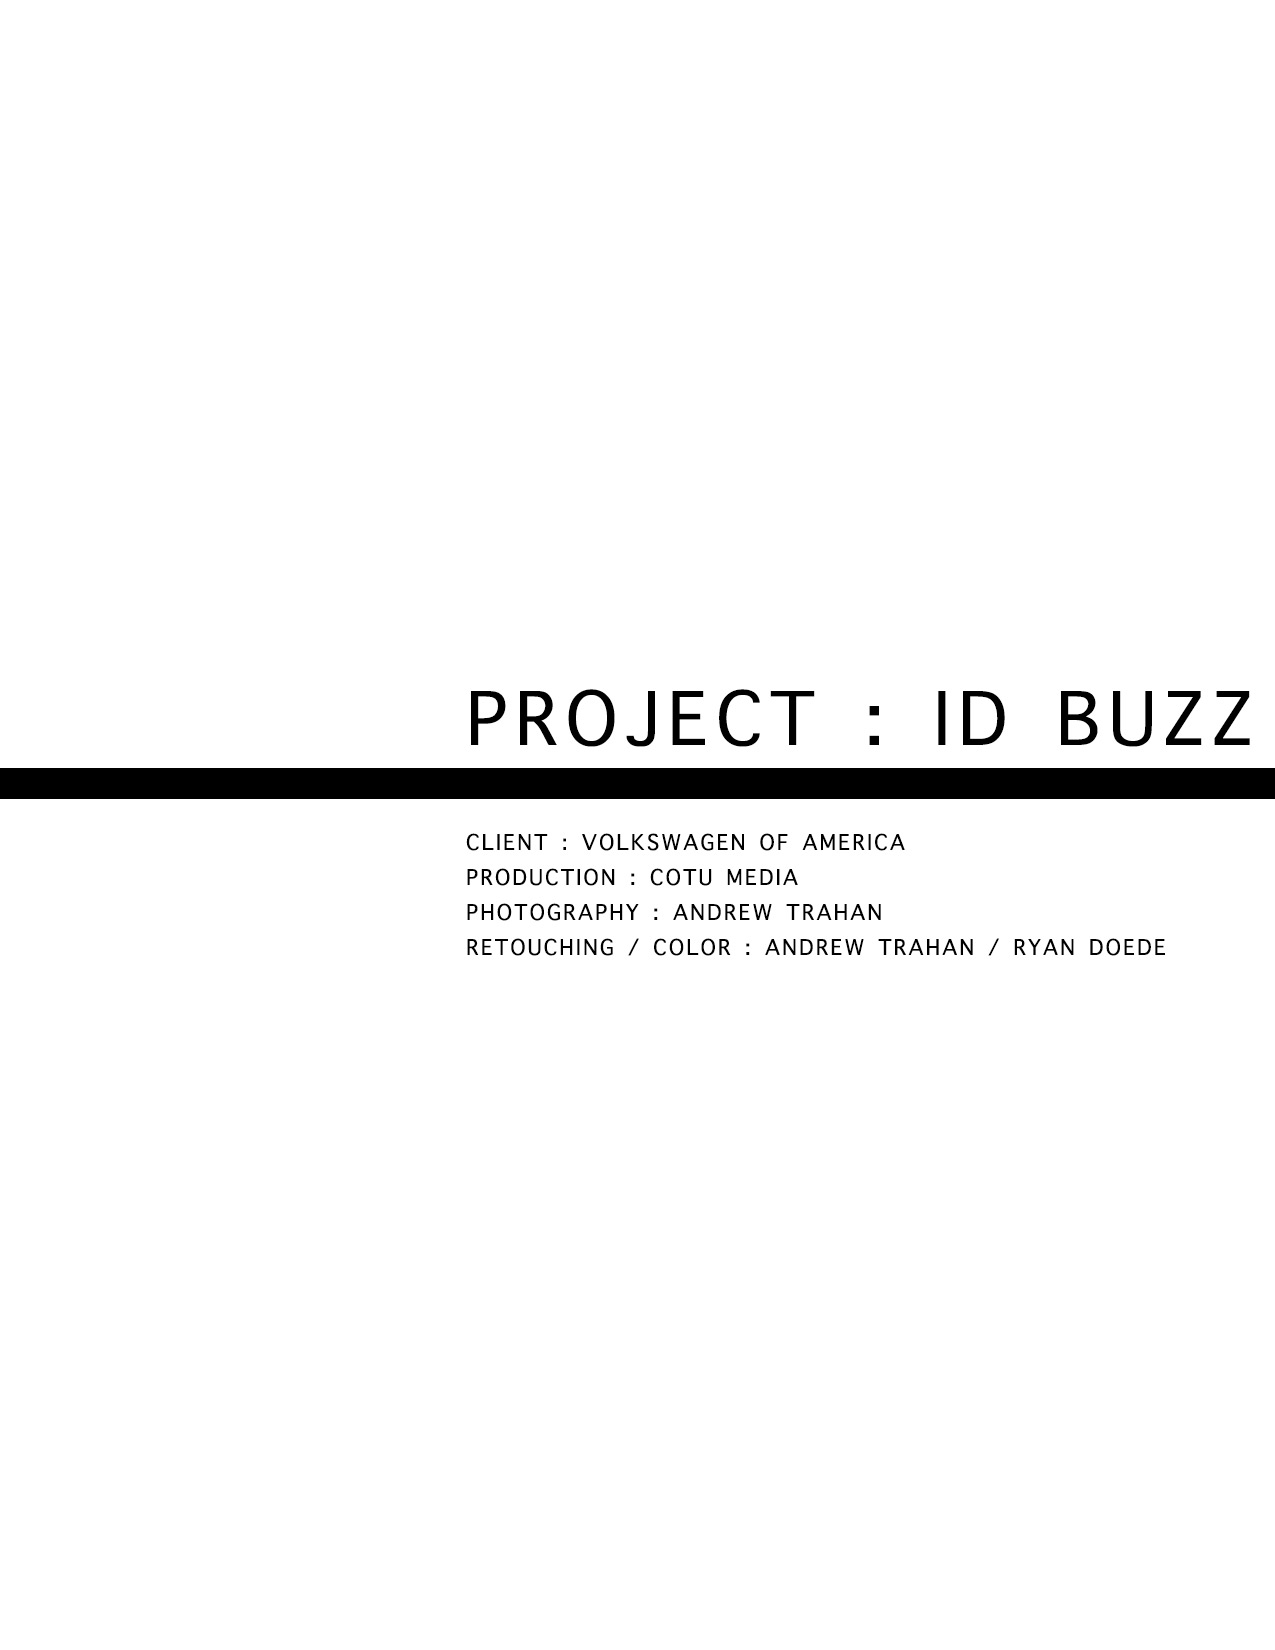 PROJECT---OPENER-PAGEidbuz